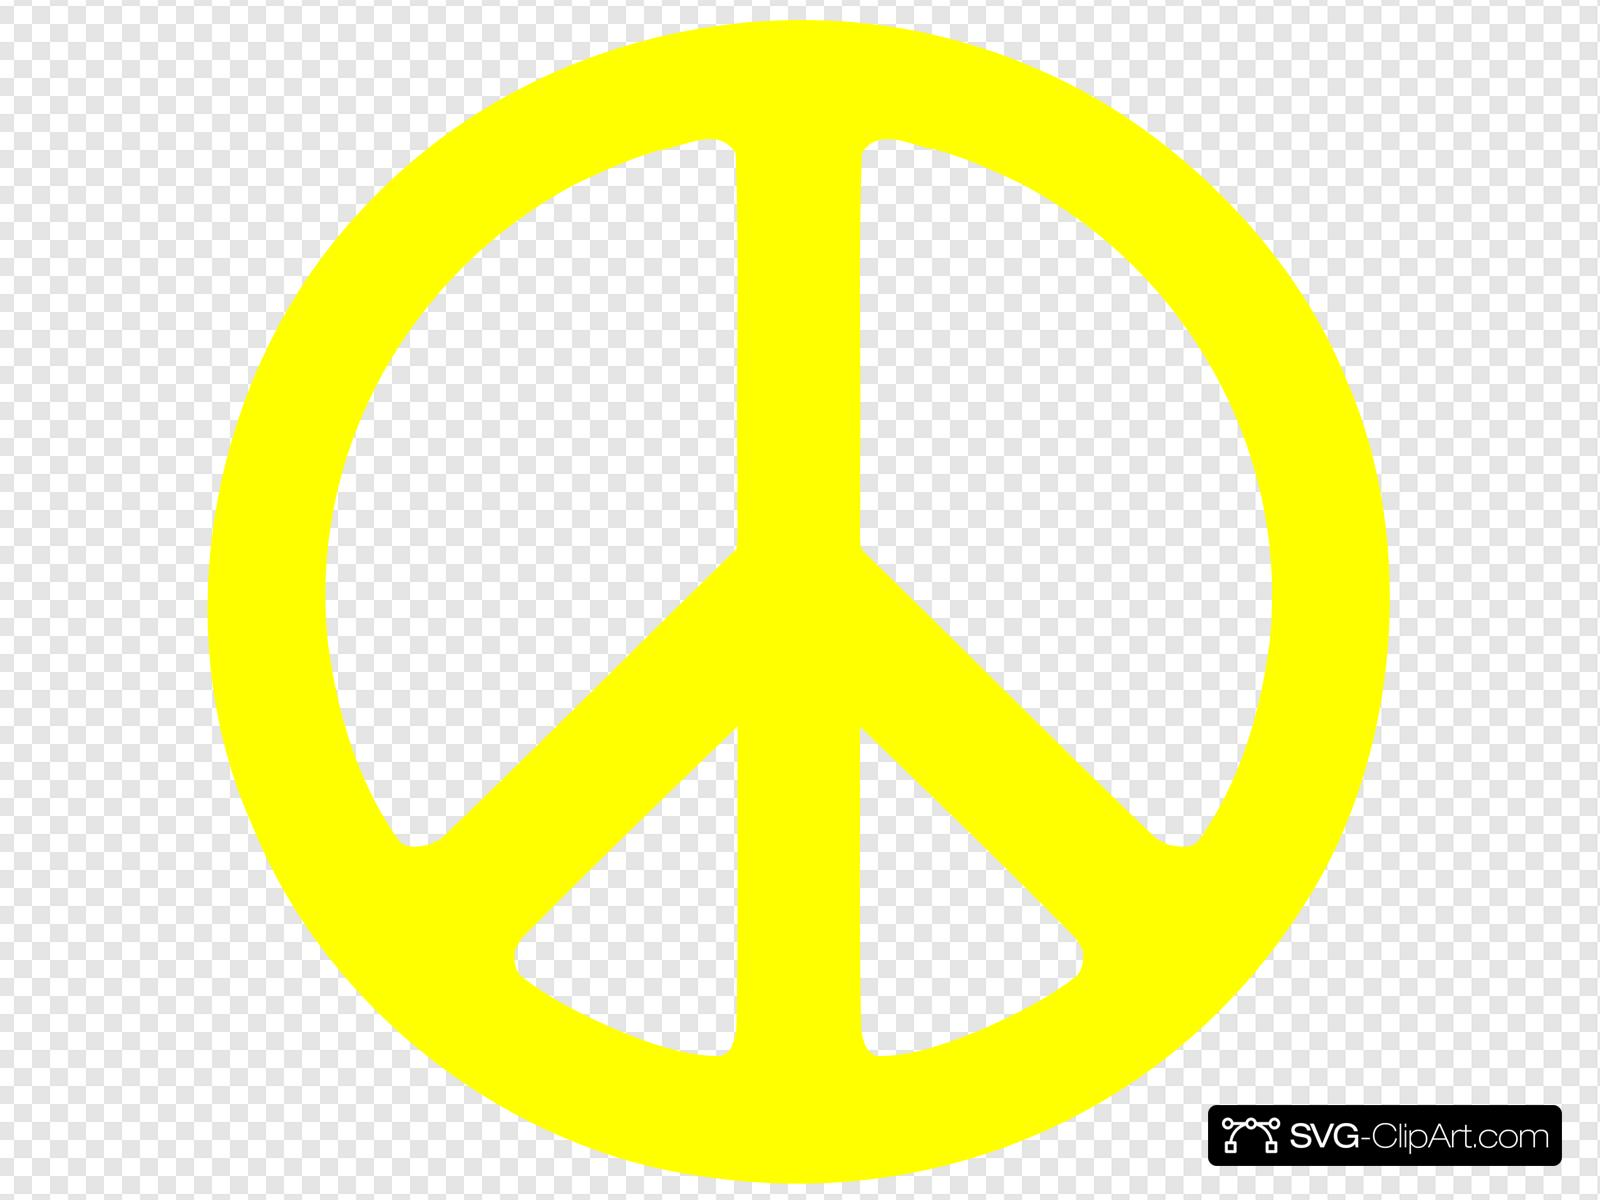 Yellow Peace Sign Clip art, Icon and SVG.